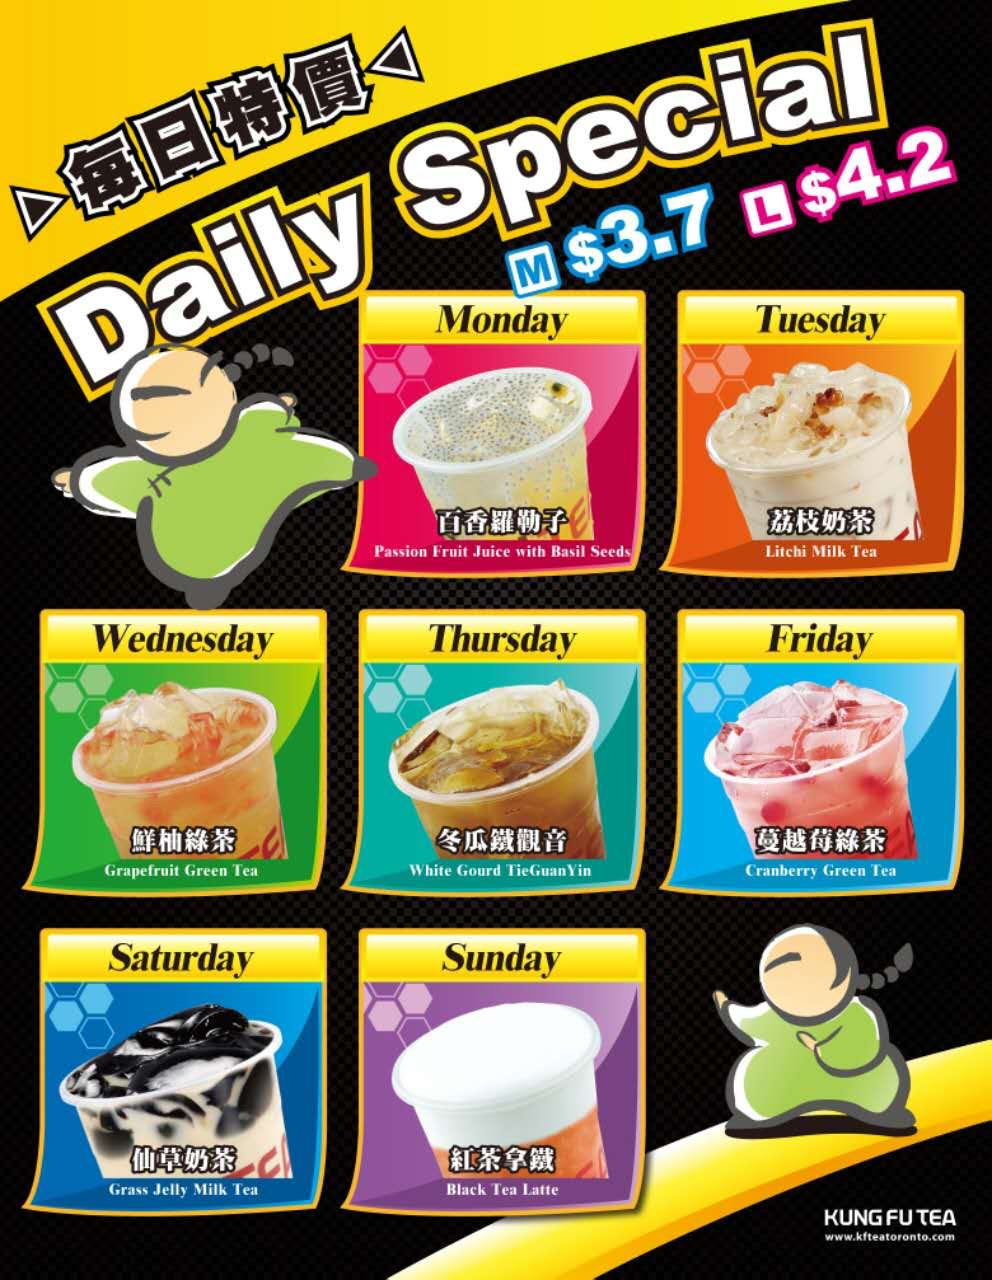 2017-09-28-daily-specials.jpeg